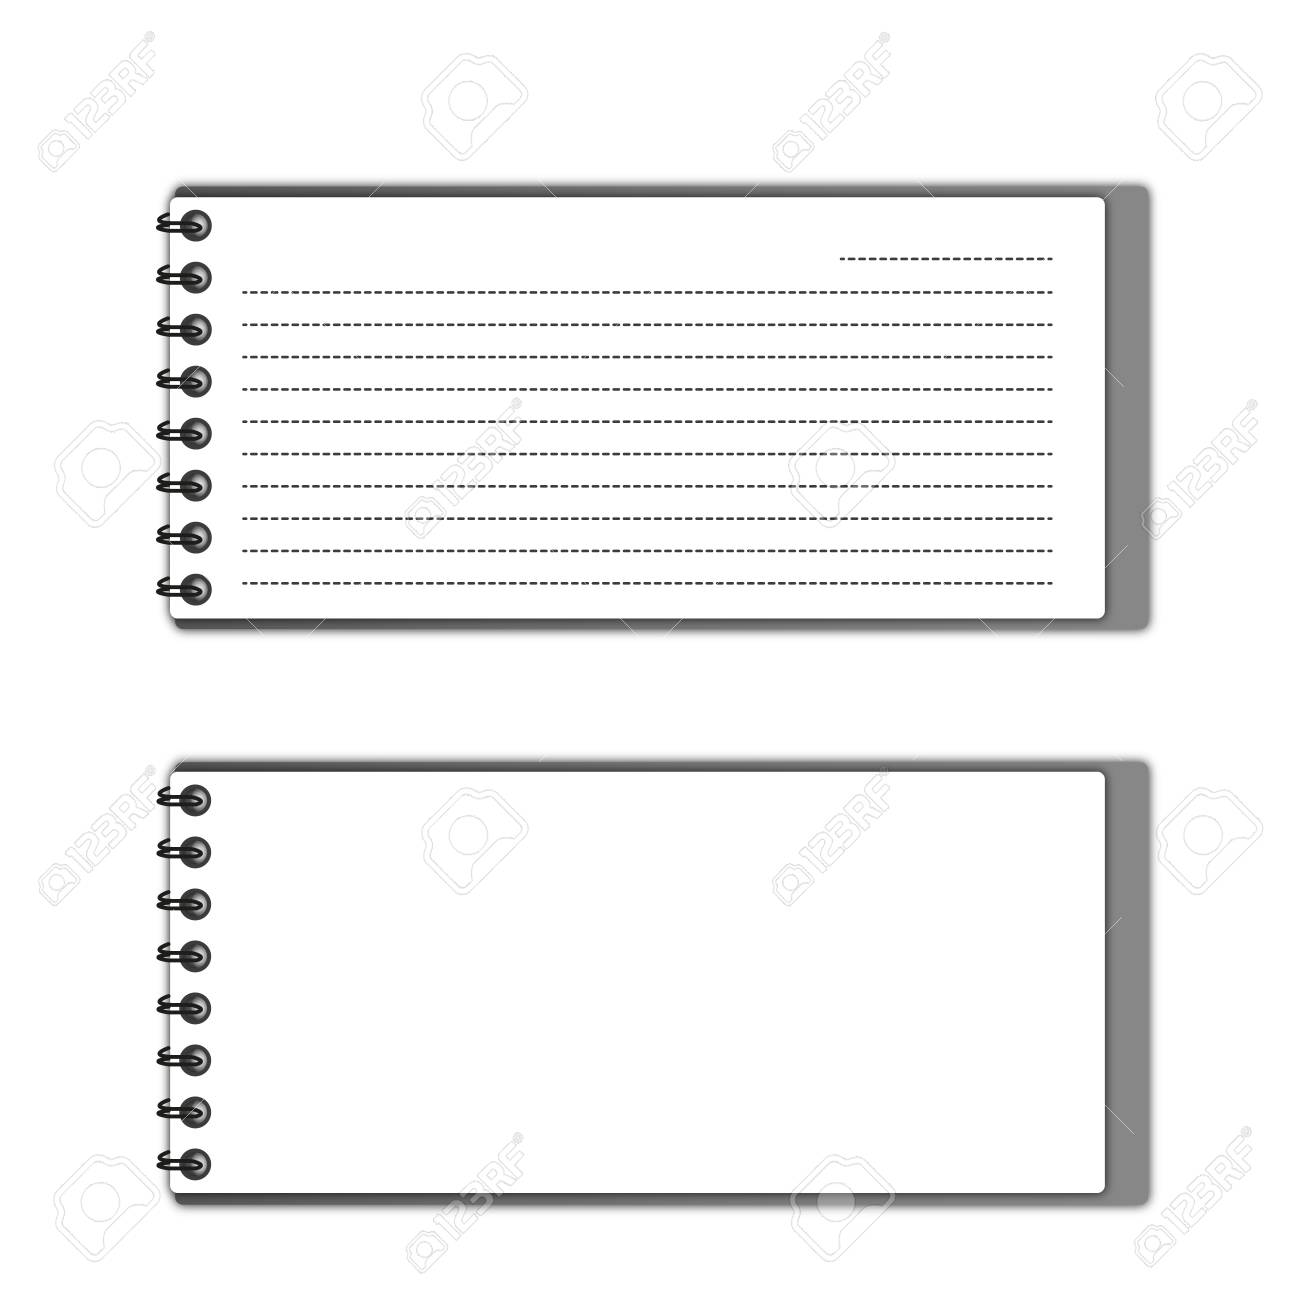 New pattern gray  pocketbook space and lines papers. Stock Photo - 12350075